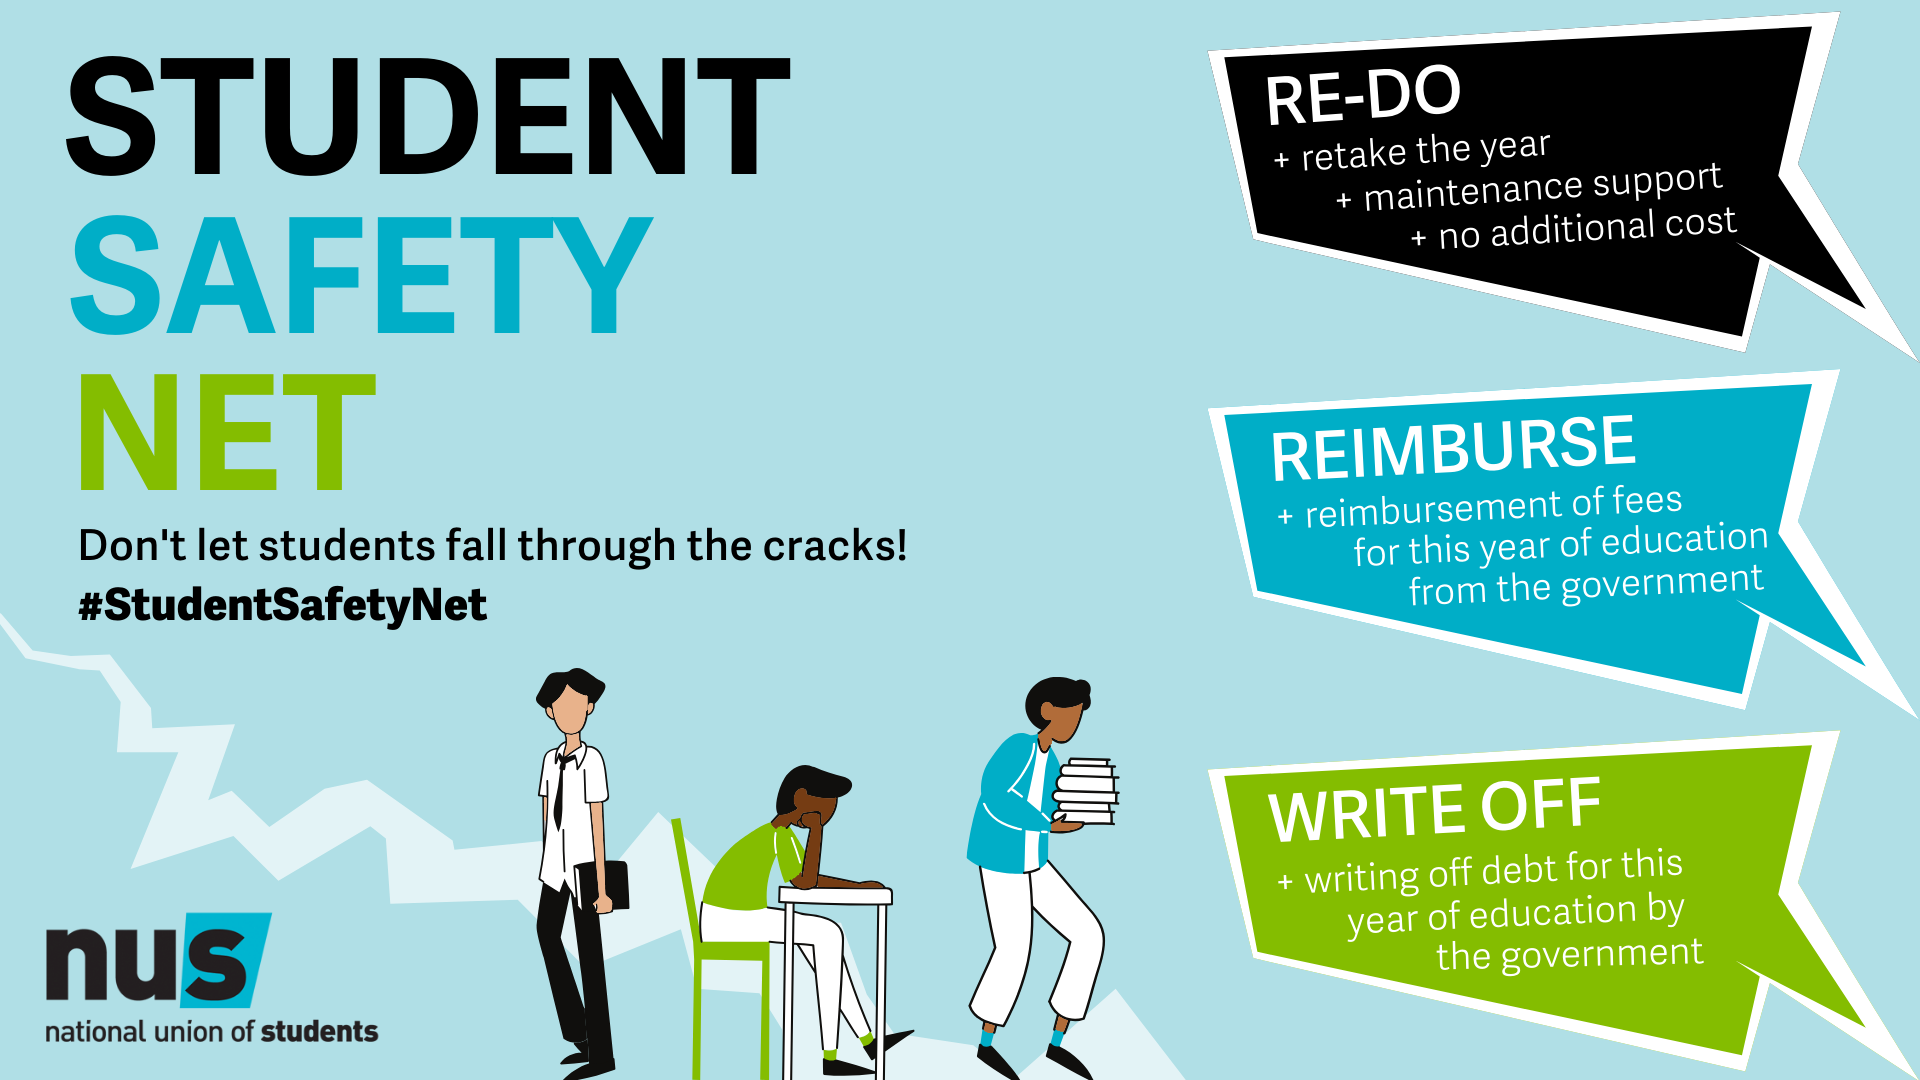 Student safety net 2